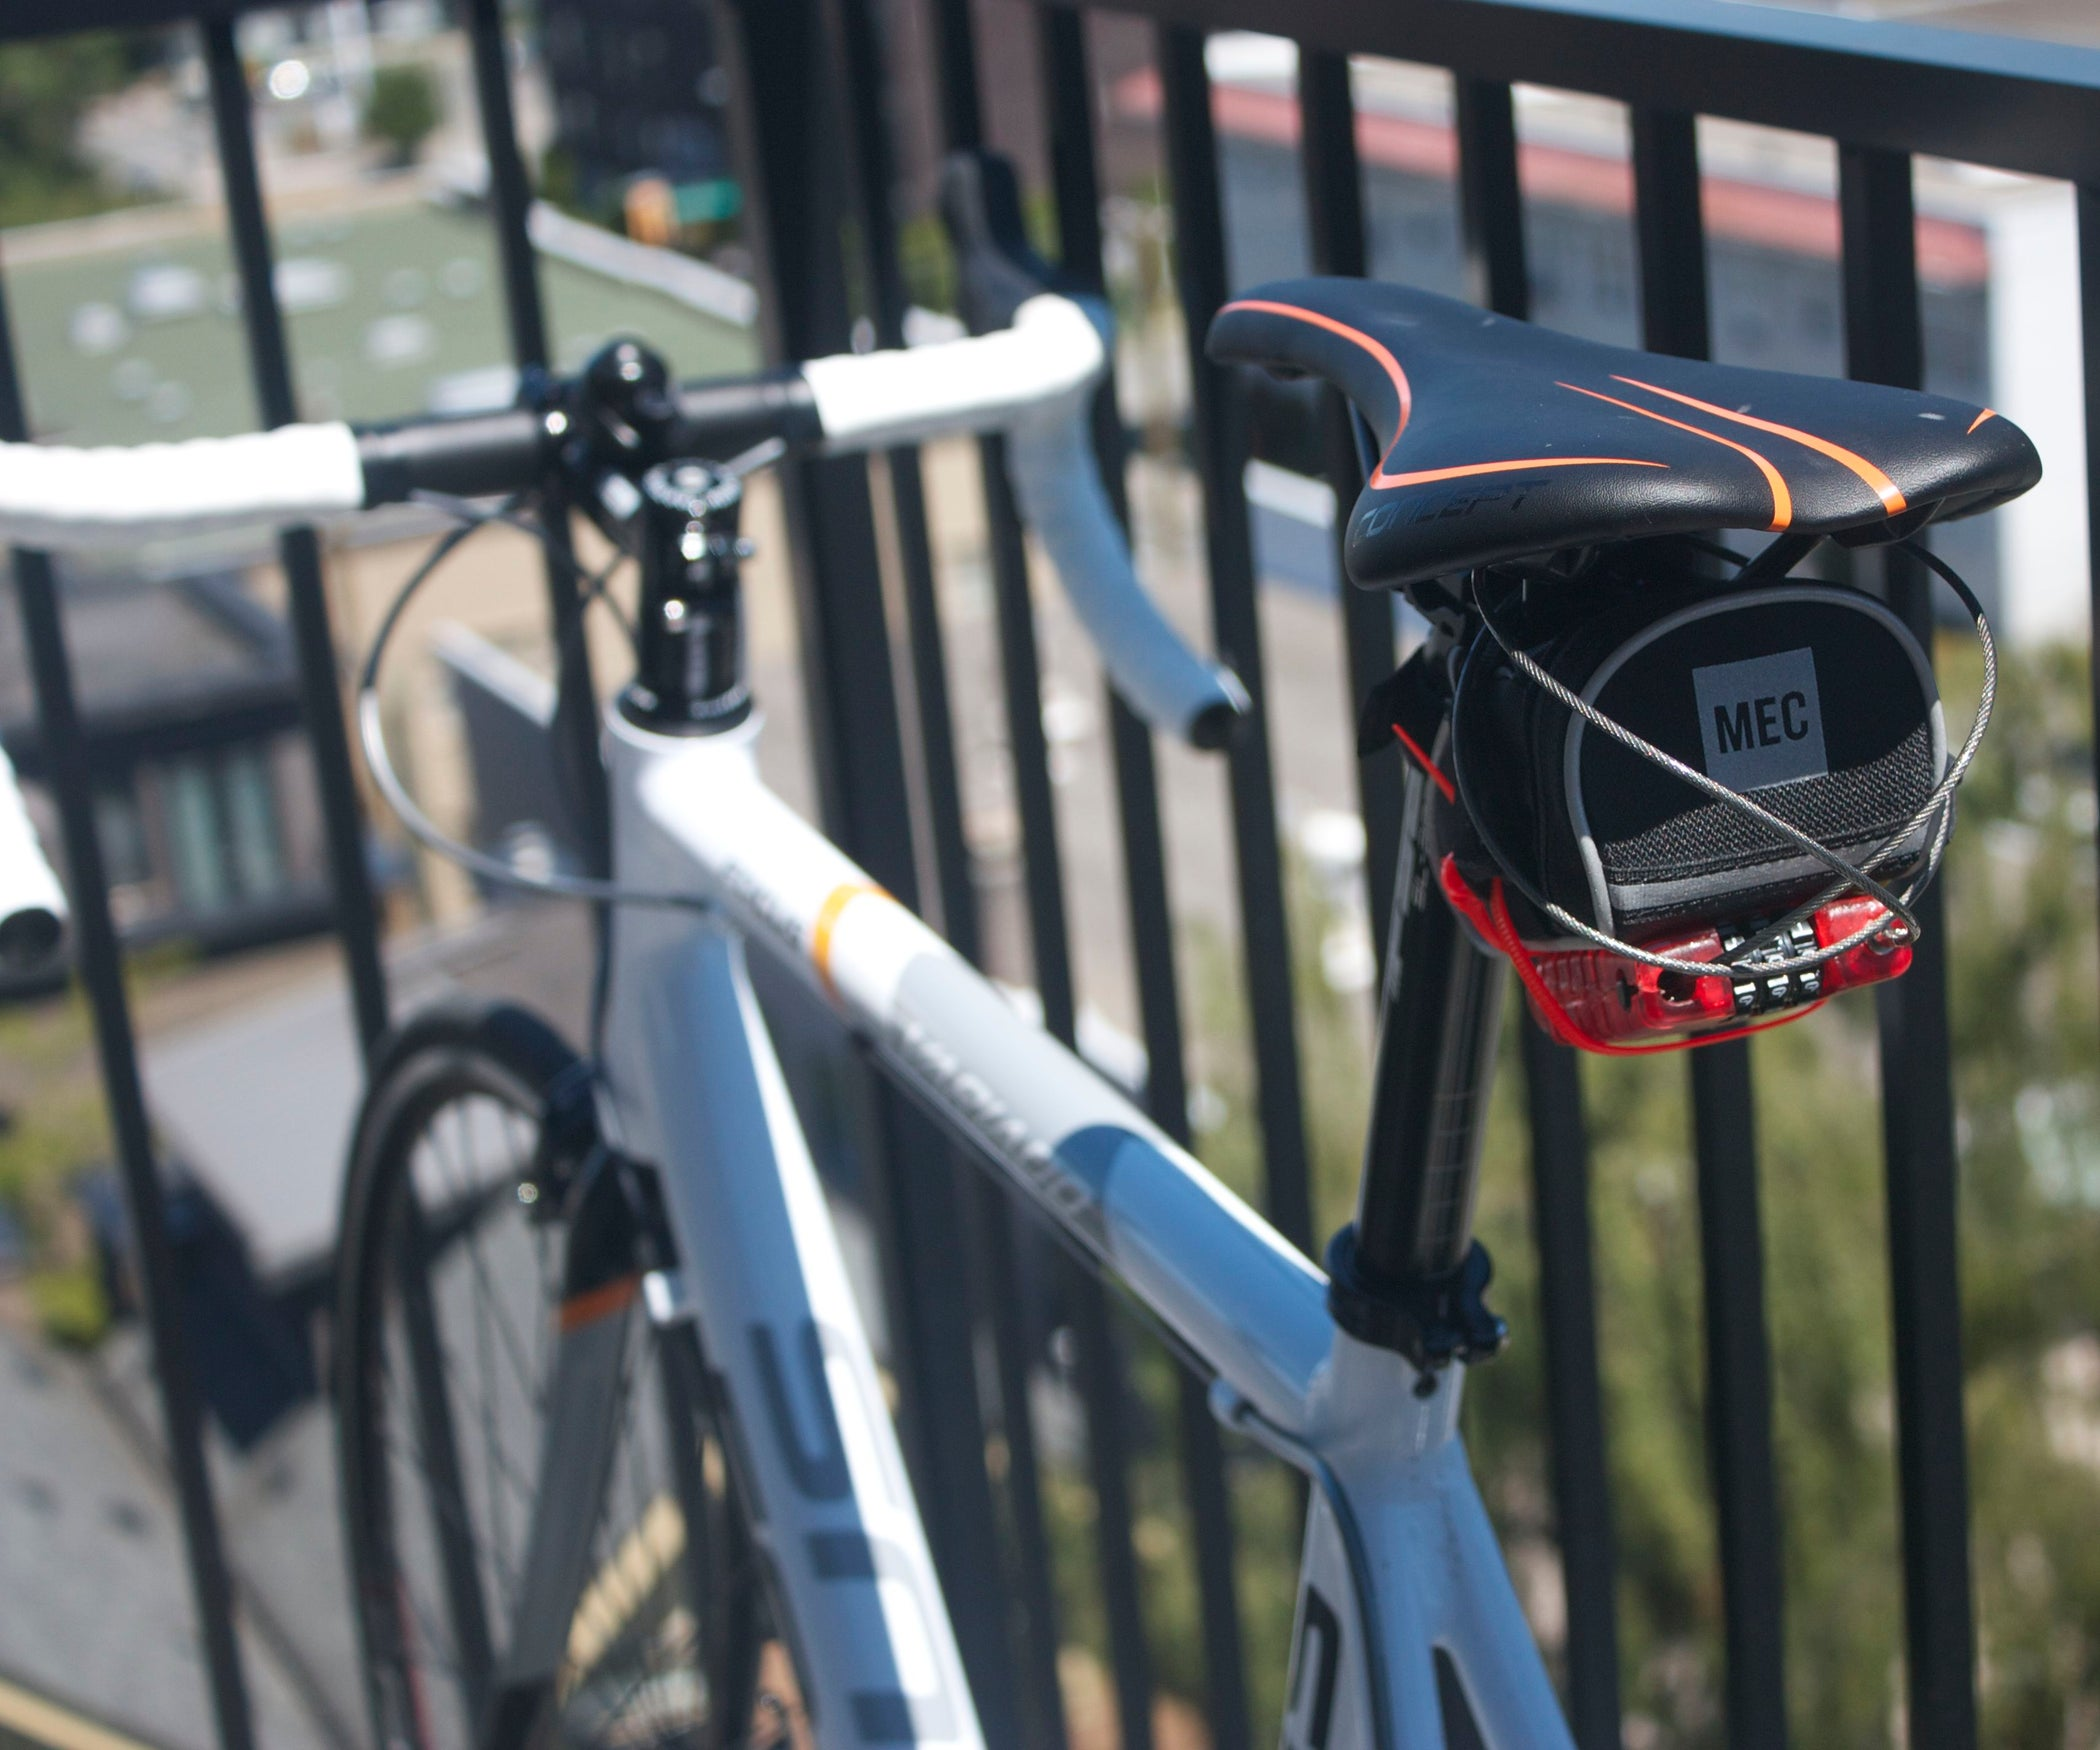 Diy Gps Tracked Bike Lock 6 Steps With Pictures Stopwatch Circuit Diagram